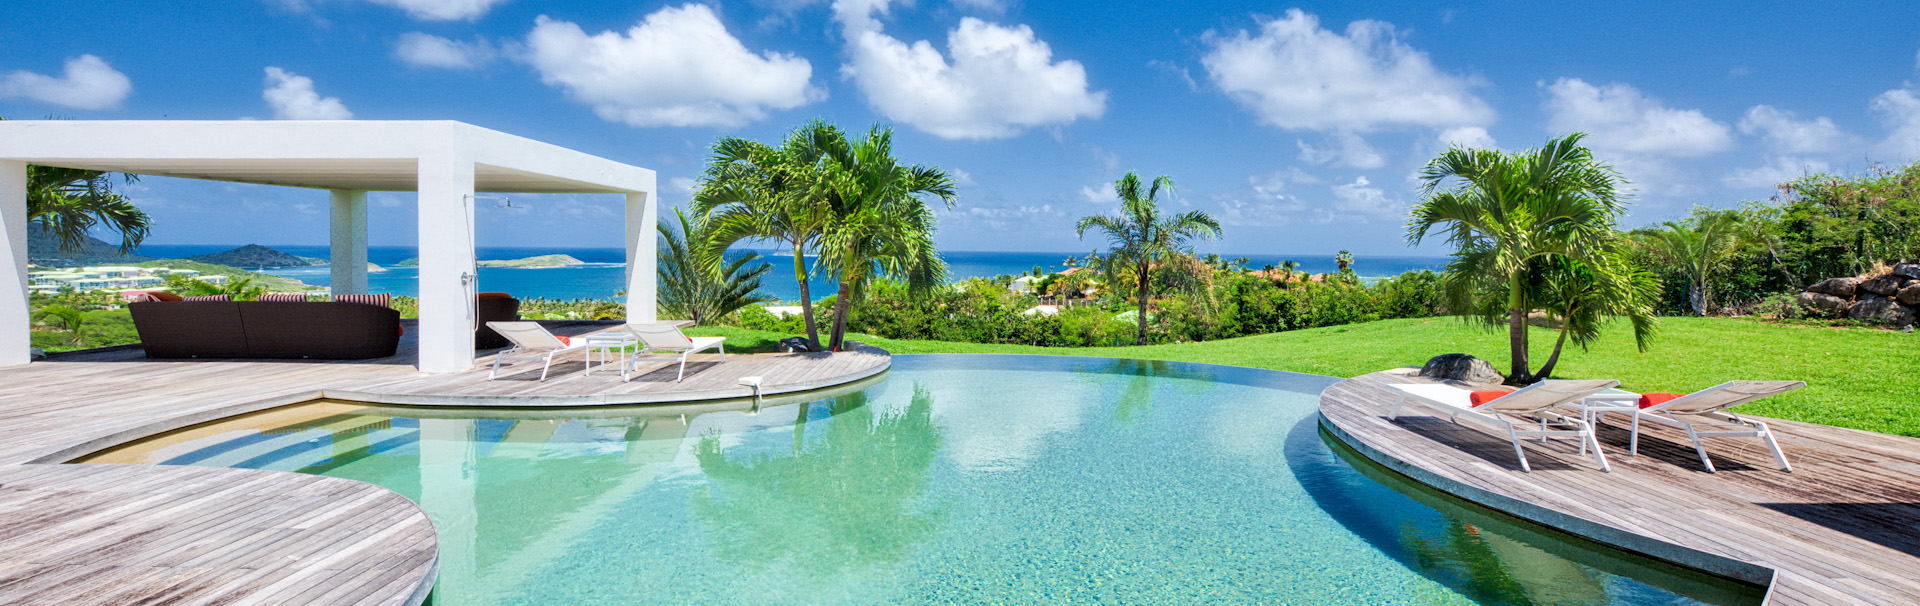 Pool, shade, and sundeck at a beach front villa in St Martin